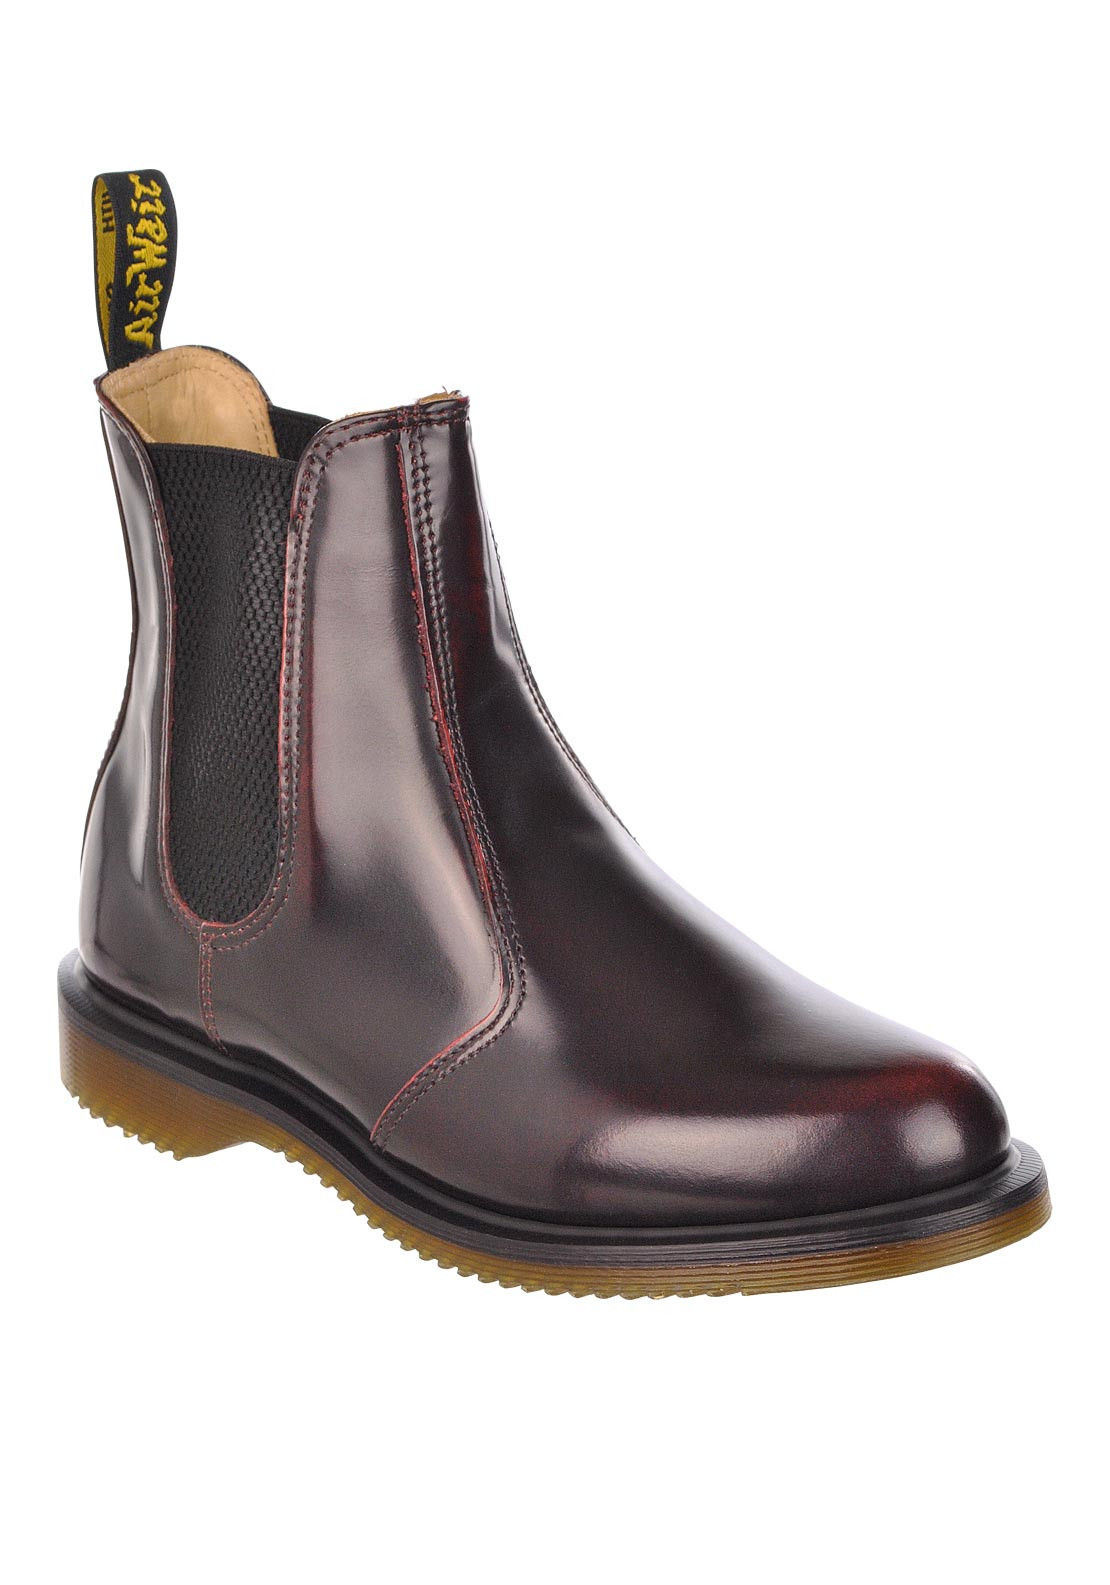 Dr. Martens Womens Air Wair Leather Ankle Boot, Cherry Red